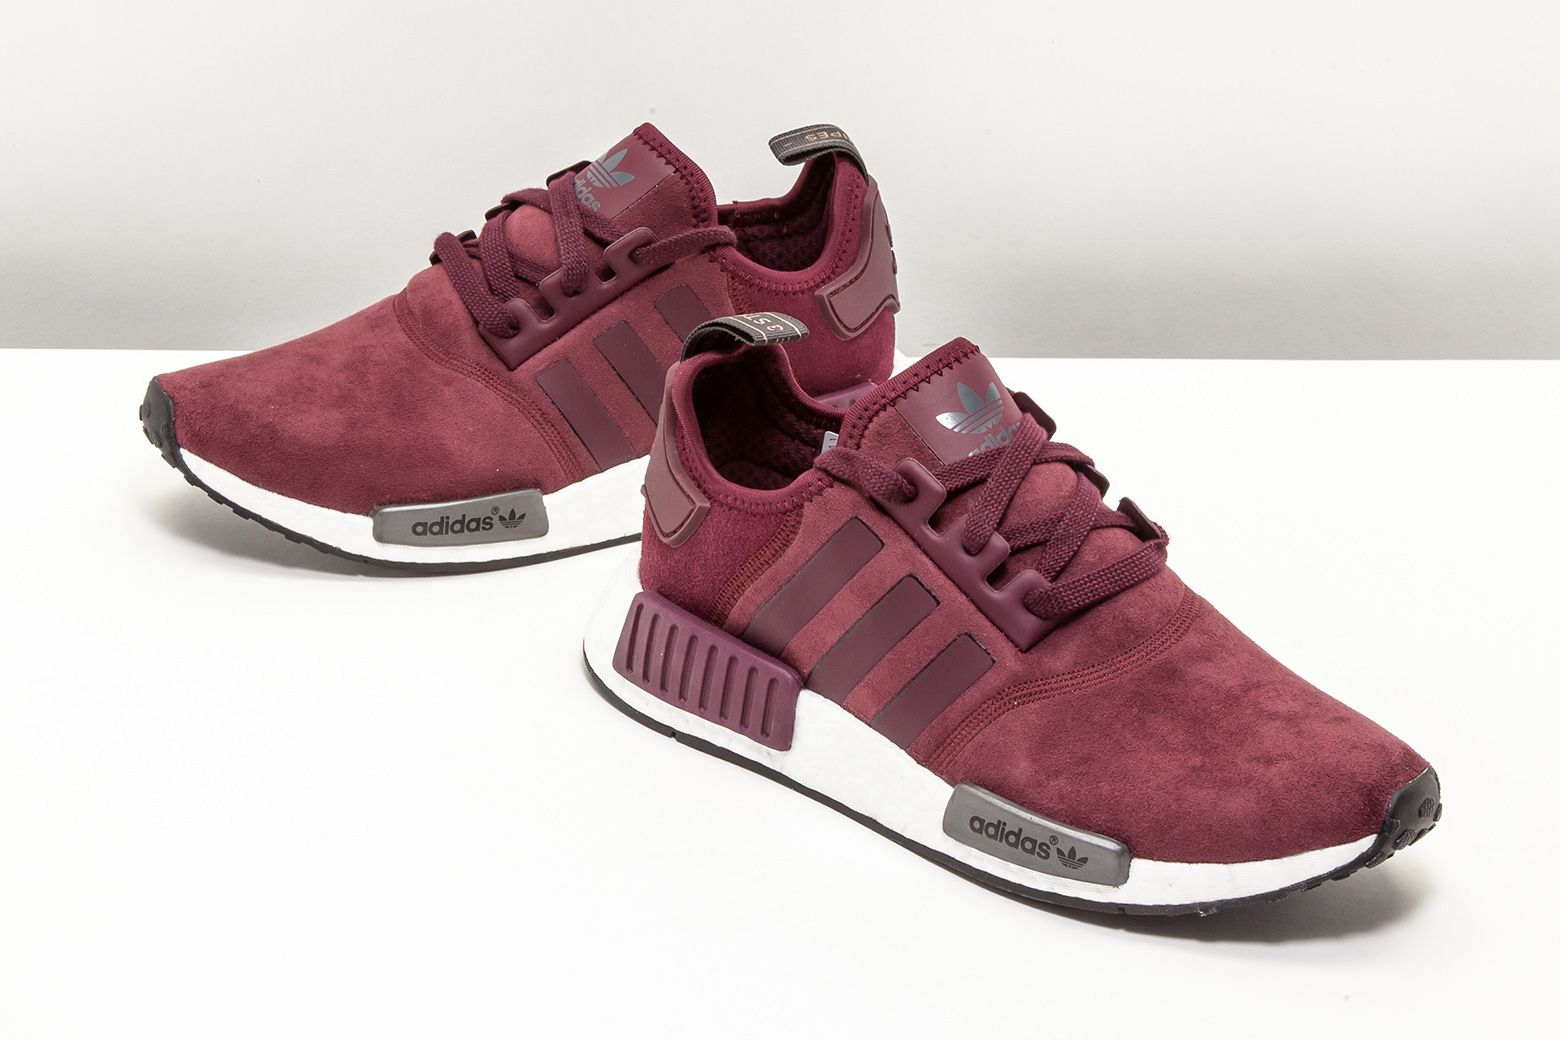 adidas nmd runner purple>>adidas nmd primeknit brown